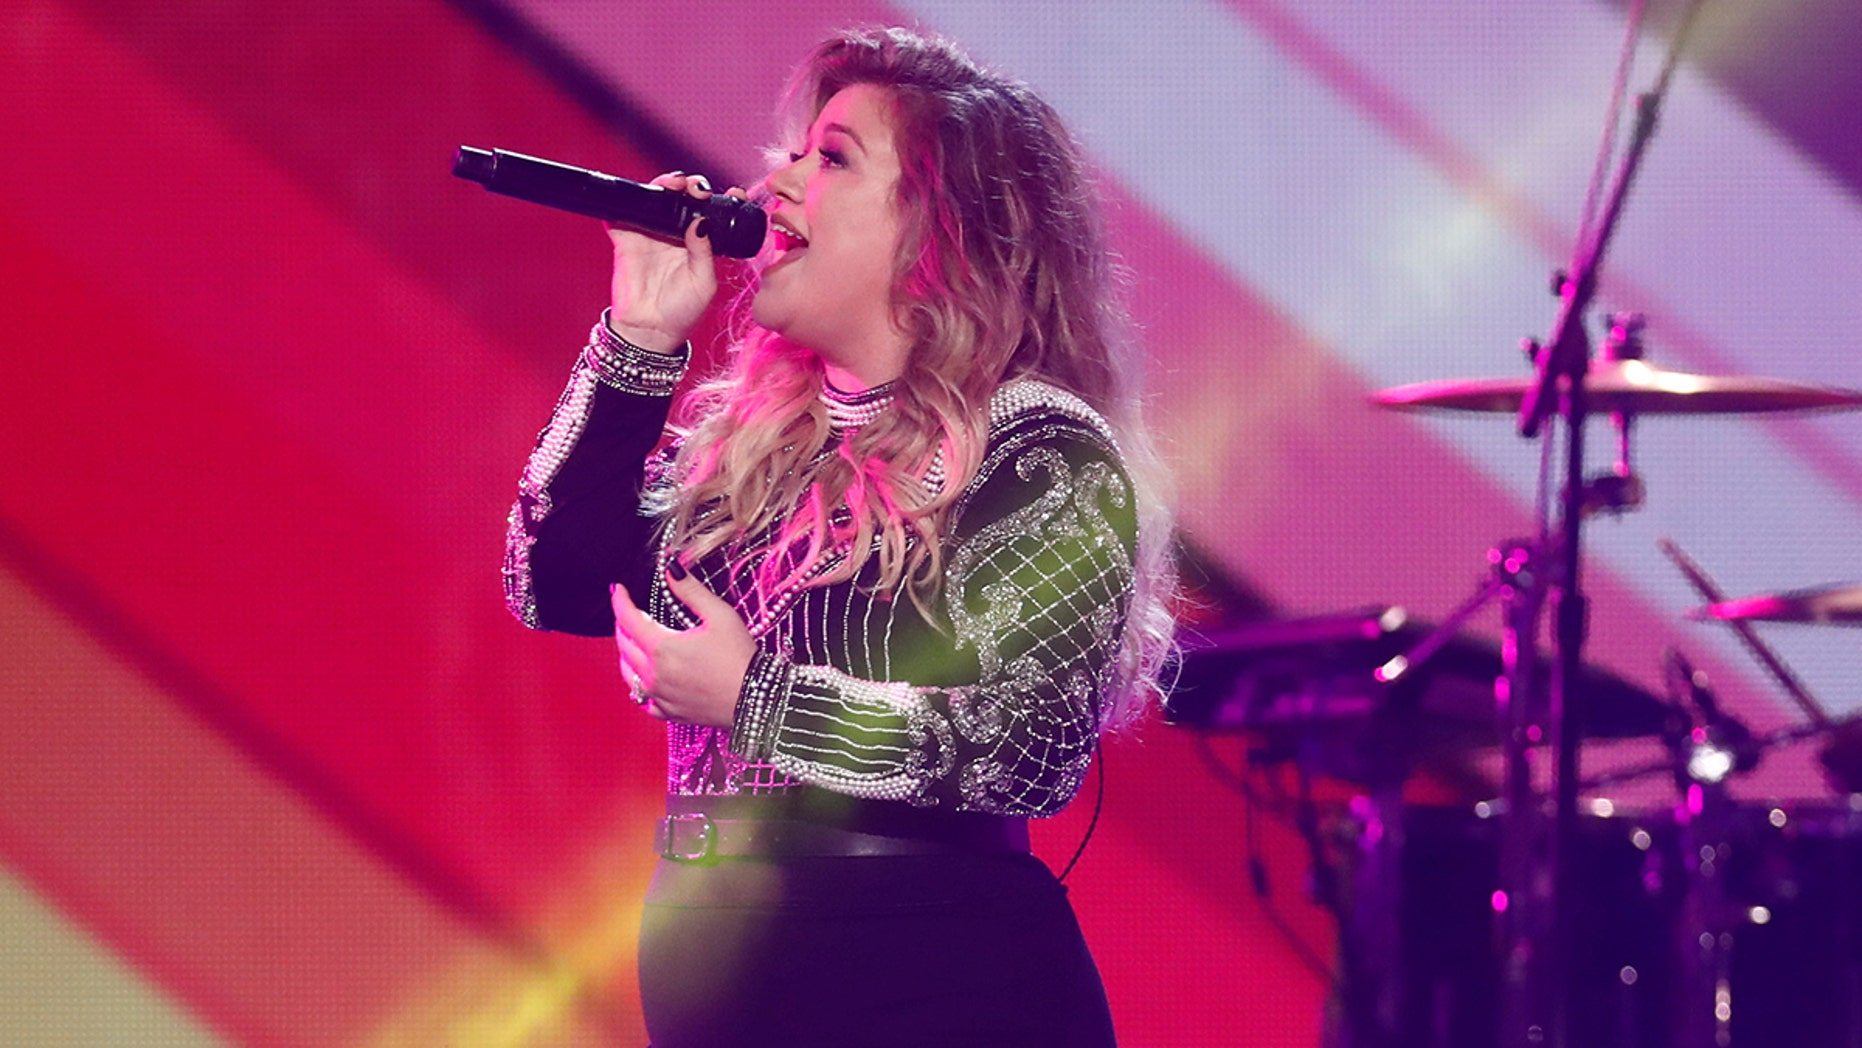 Kelly Clarkson performs during the closing ceremony for the Invictus Games in Toronto, Ontario, Canada September 30, 2017.    REUTERS/Mark Blinch - RC1128EF6DB0